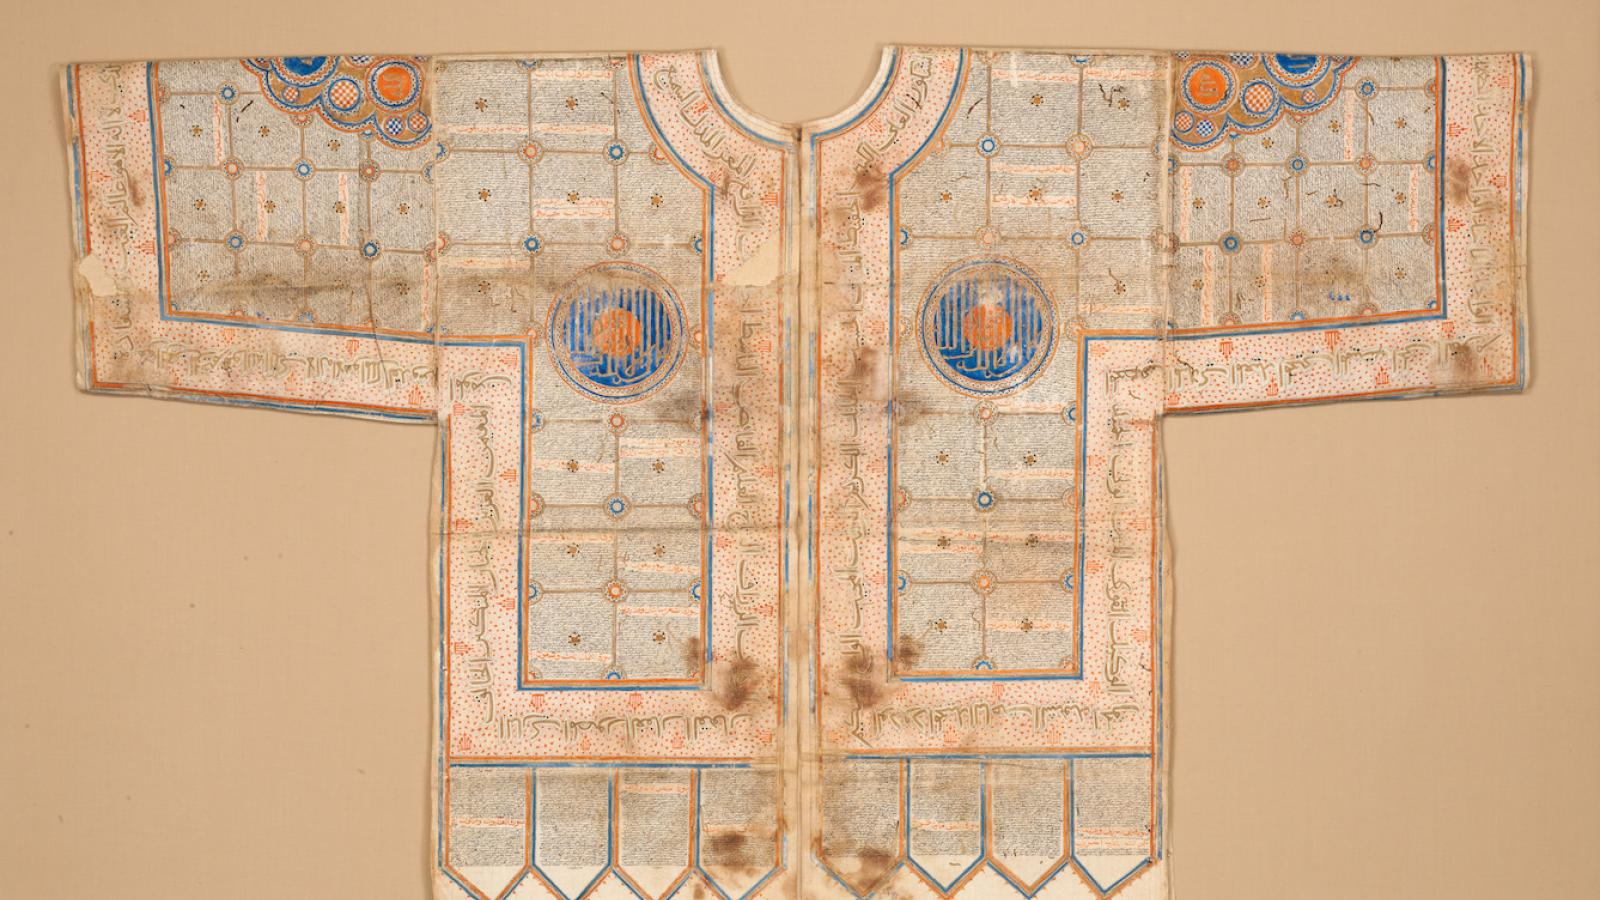 Talismanic shirt from 15th century North India to protect the wearer against plague